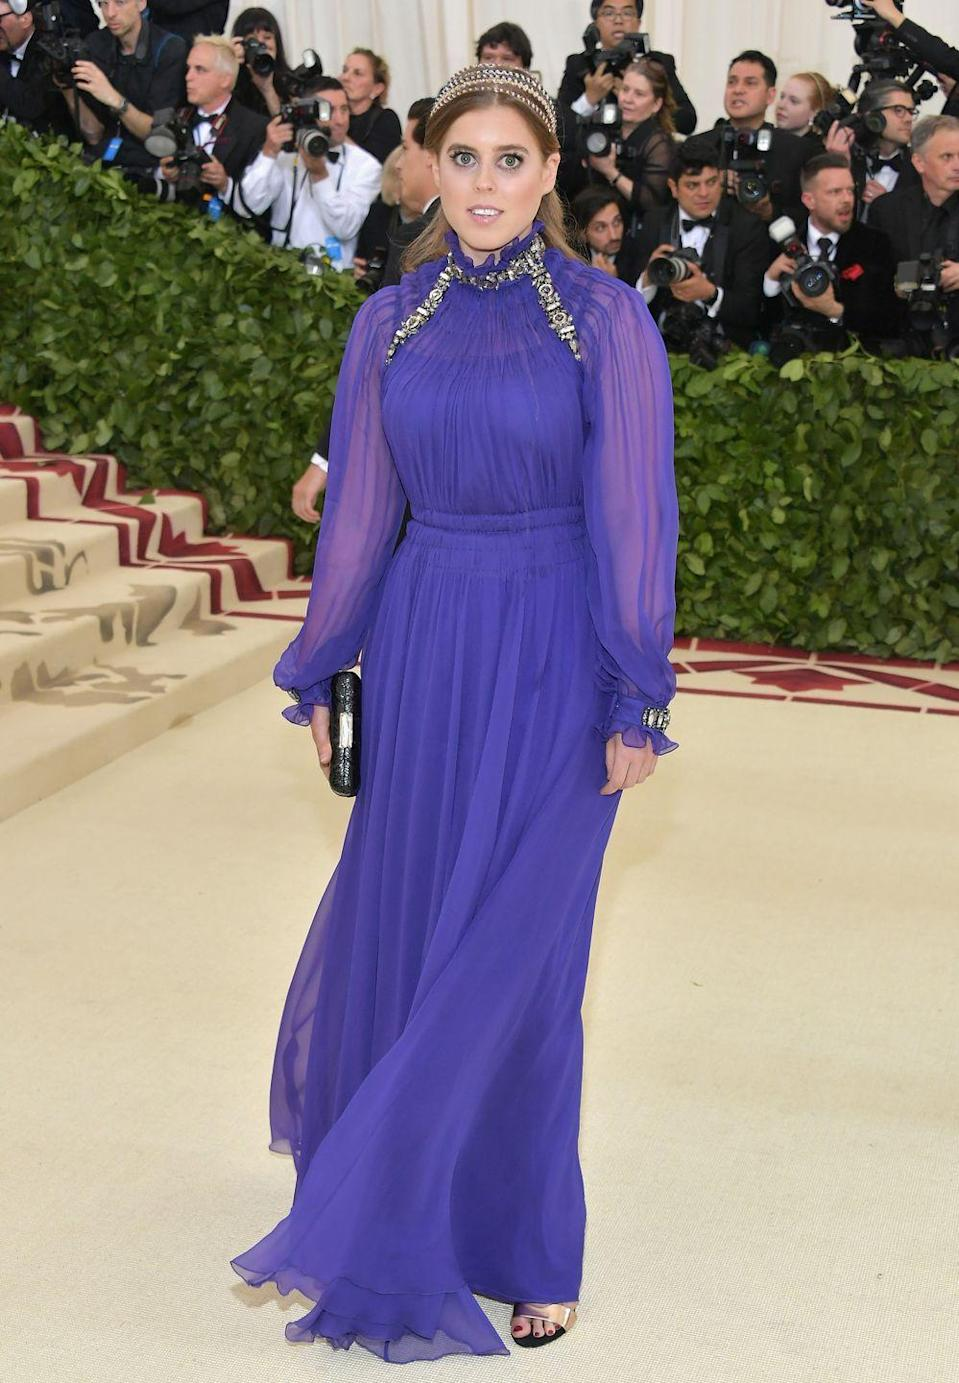 <p>Princess Beatrice attended the 2018 Met Gala wearing a regal shade of purple. The young royal wore the chiffon Alberta Ferretti gown with a high neck and billowing sleeves.</p>